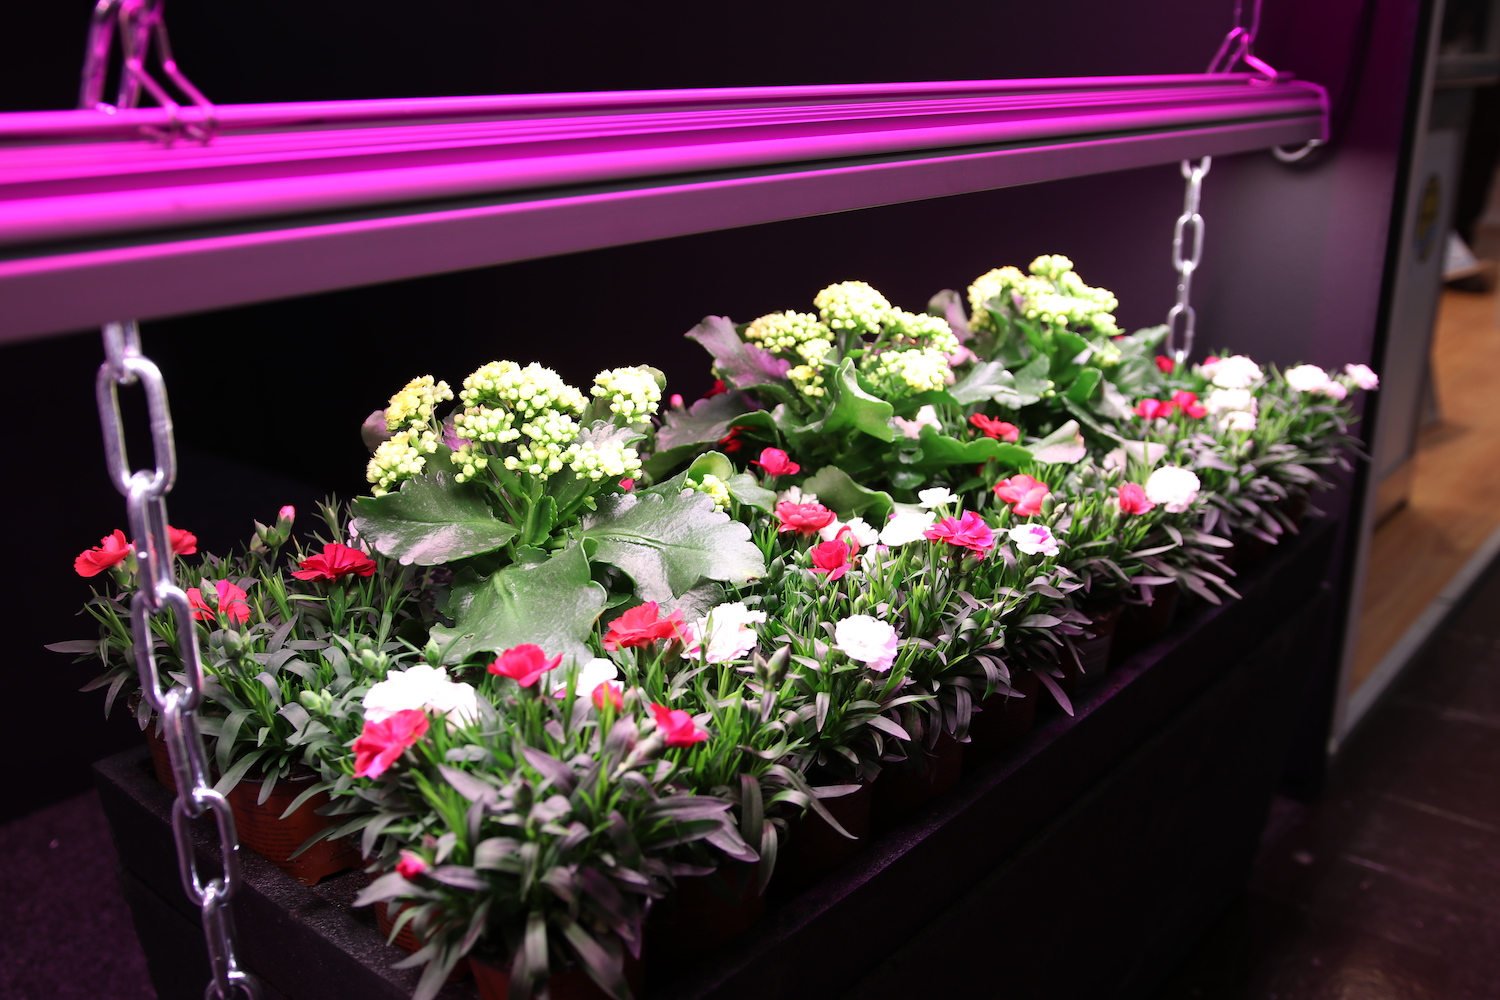 LightDNA 2-channel LED Grow Lights